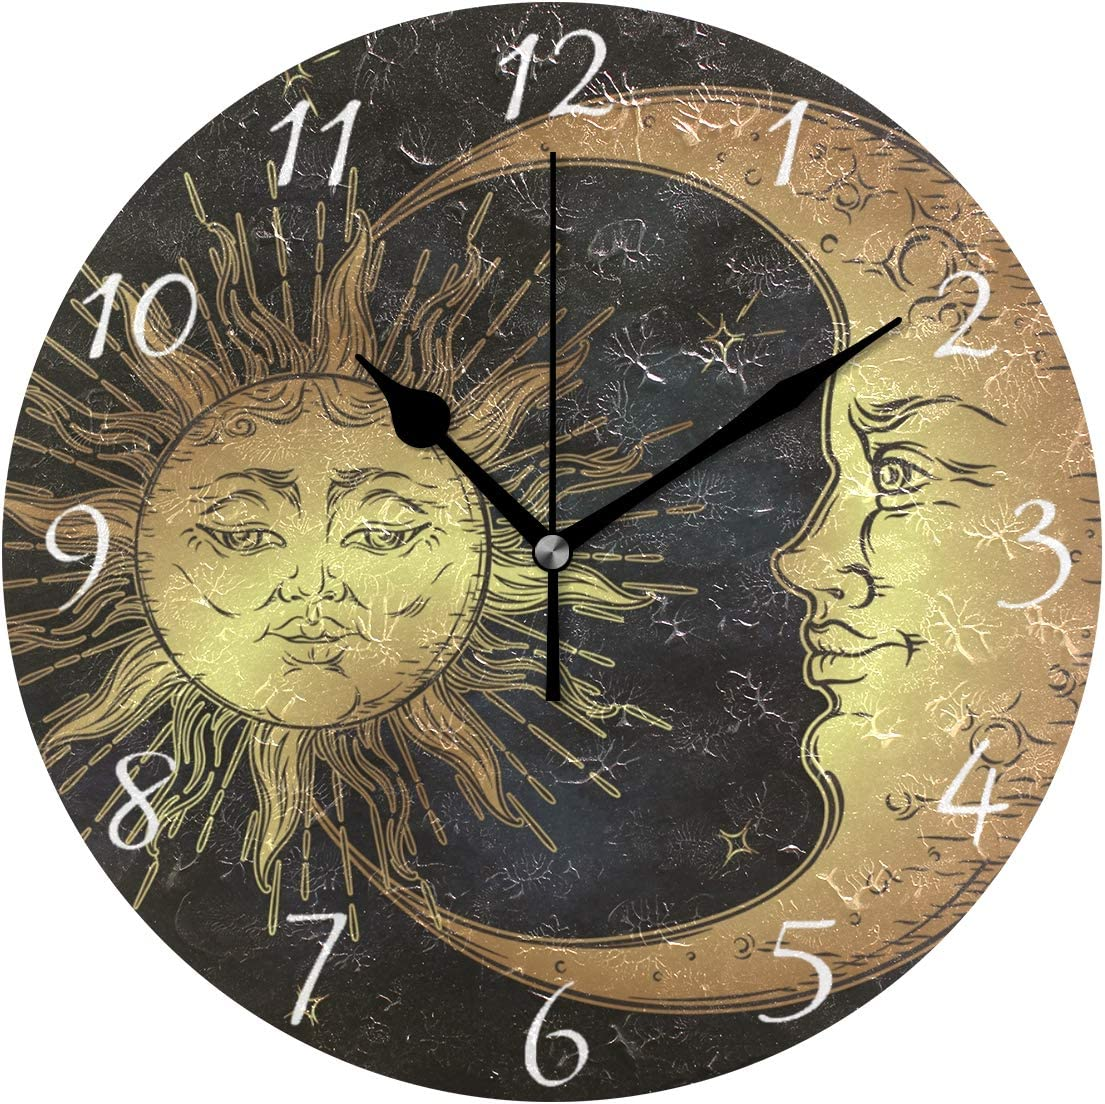 AHOMY Round Wall Clock Boho Sun and Moon Stars Home Art Decor Non-Ticking Numeral Clock for Home Office